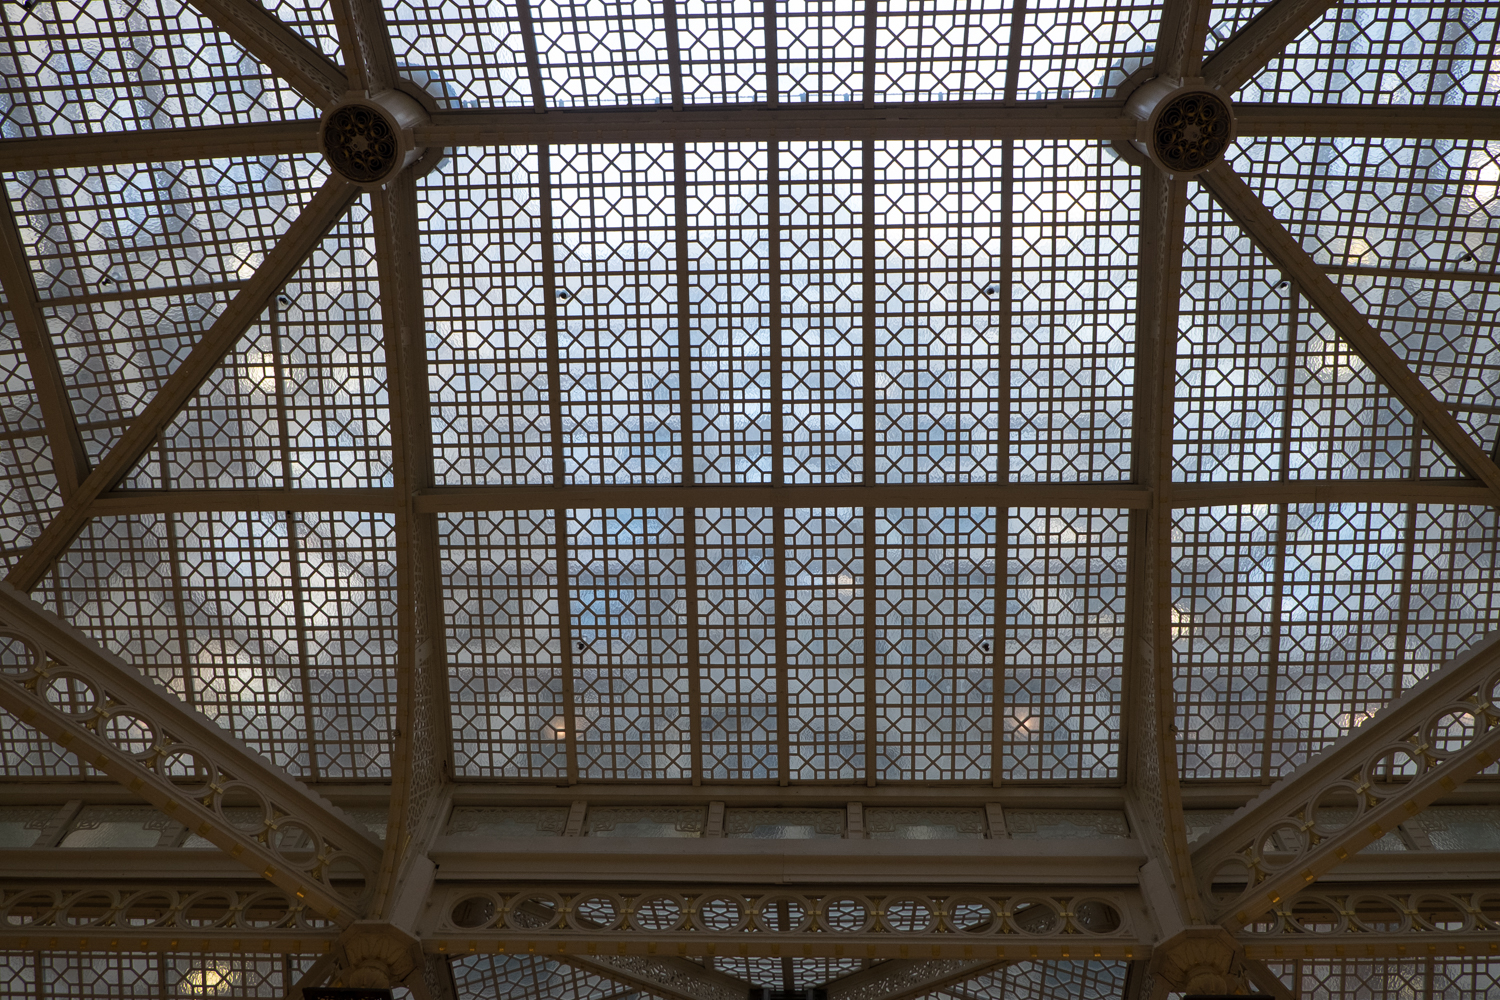 Rookery Building Ron Gordon Photo 10142015-78.jpg